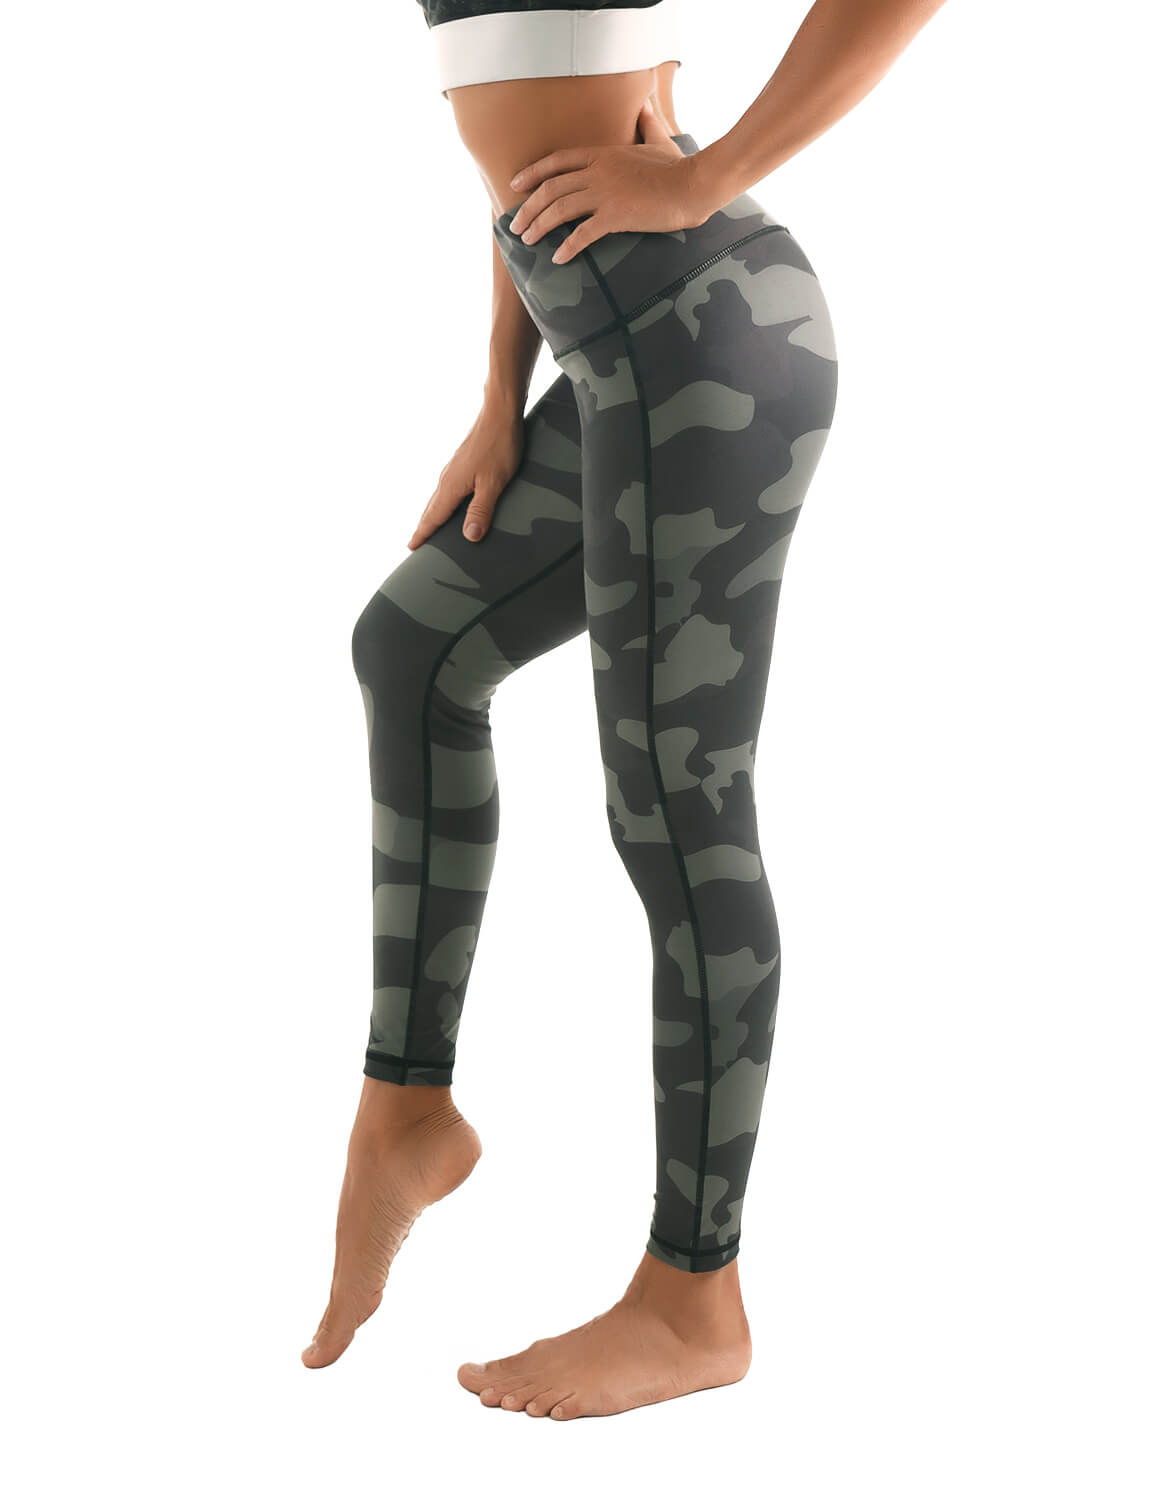 Blooming Jelly_Camo Print Workout Training Leggings_Camo Print_257219_21_Women Athletic Comfy Outfits_Bottoms_Leggings